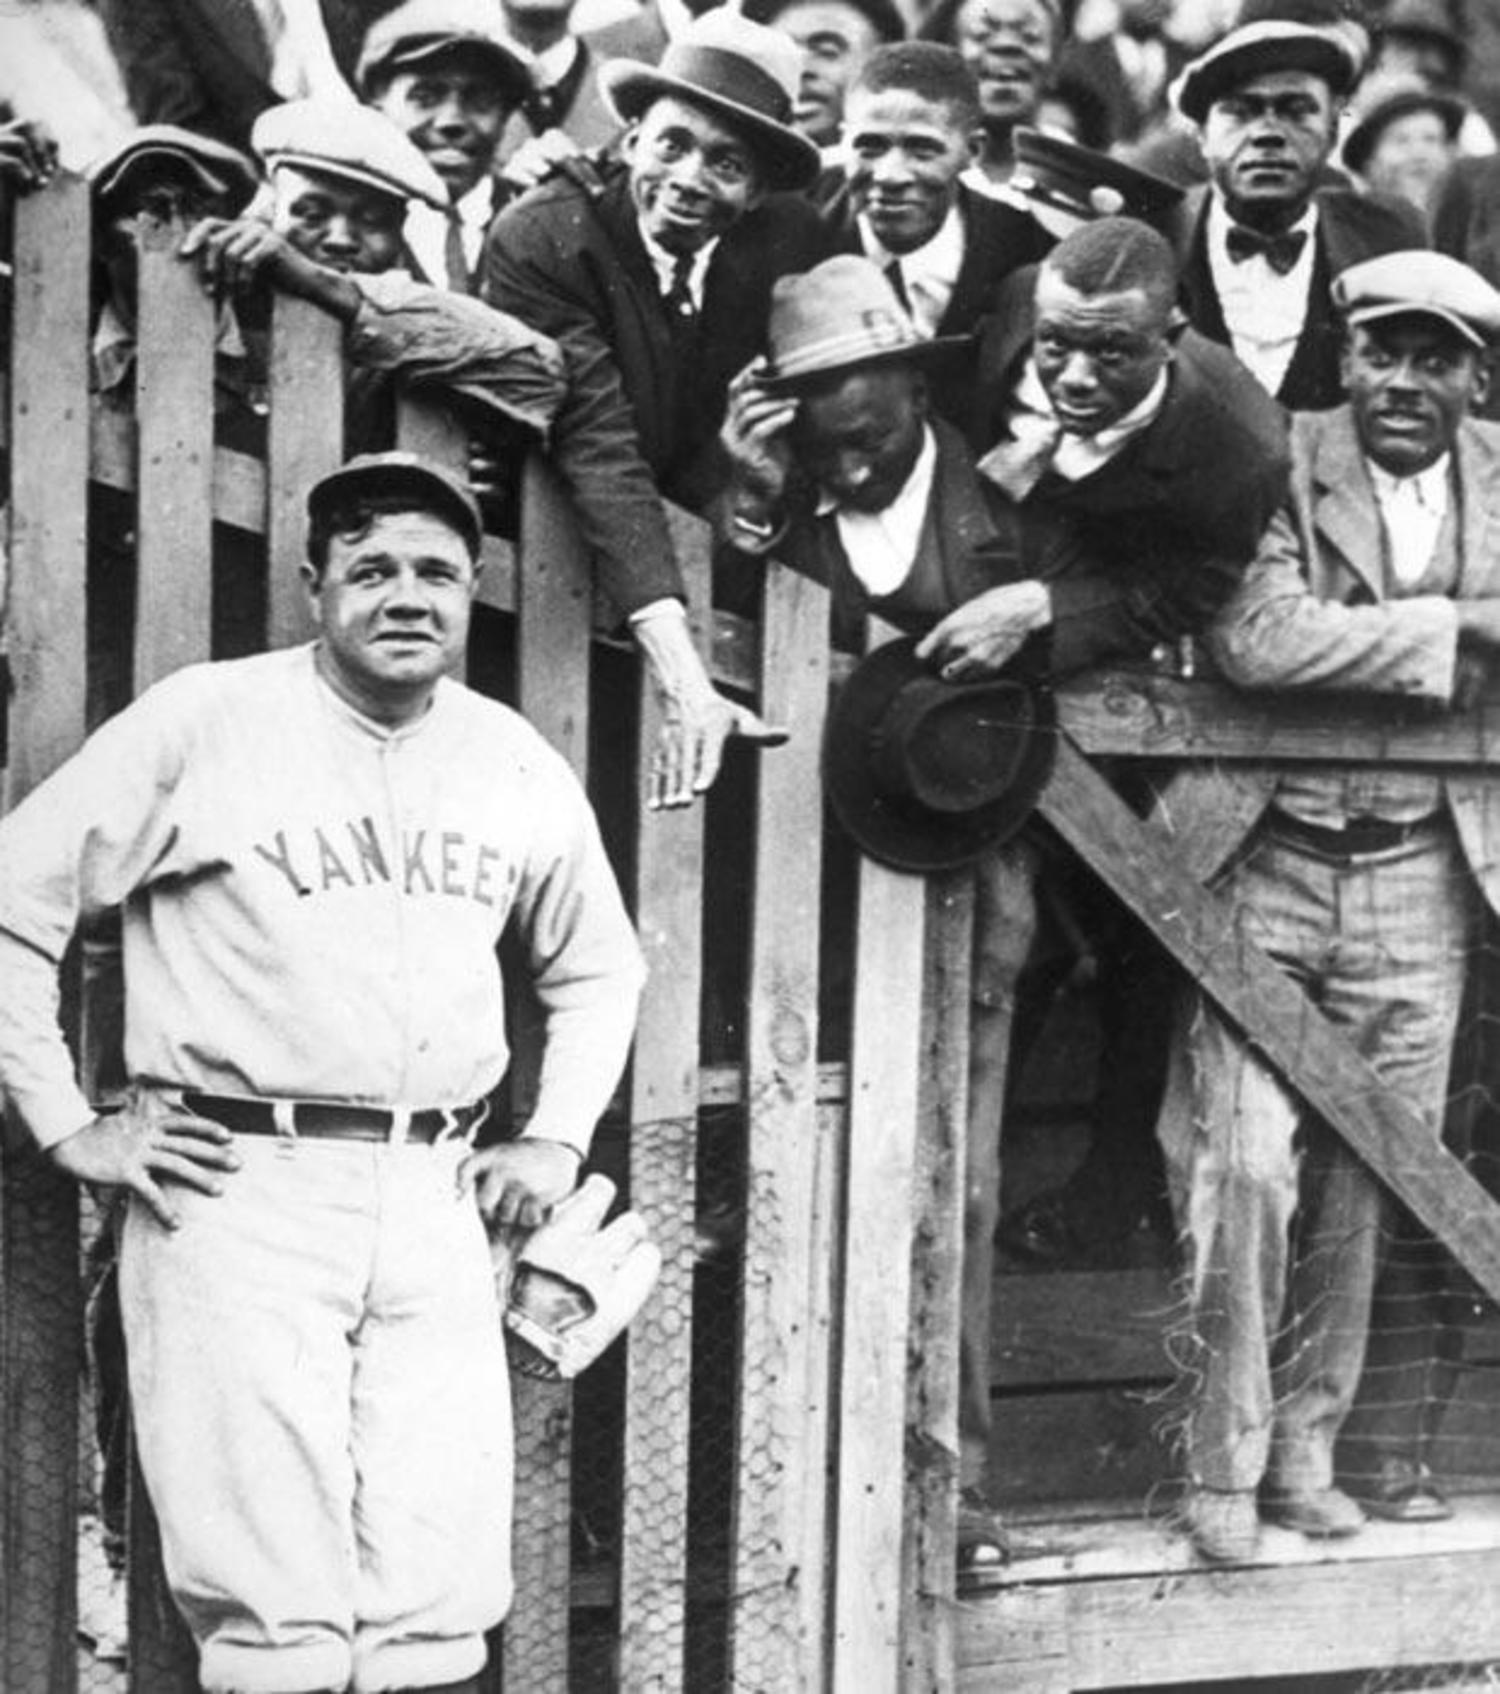 Babe Ruth posing with fans 1925.